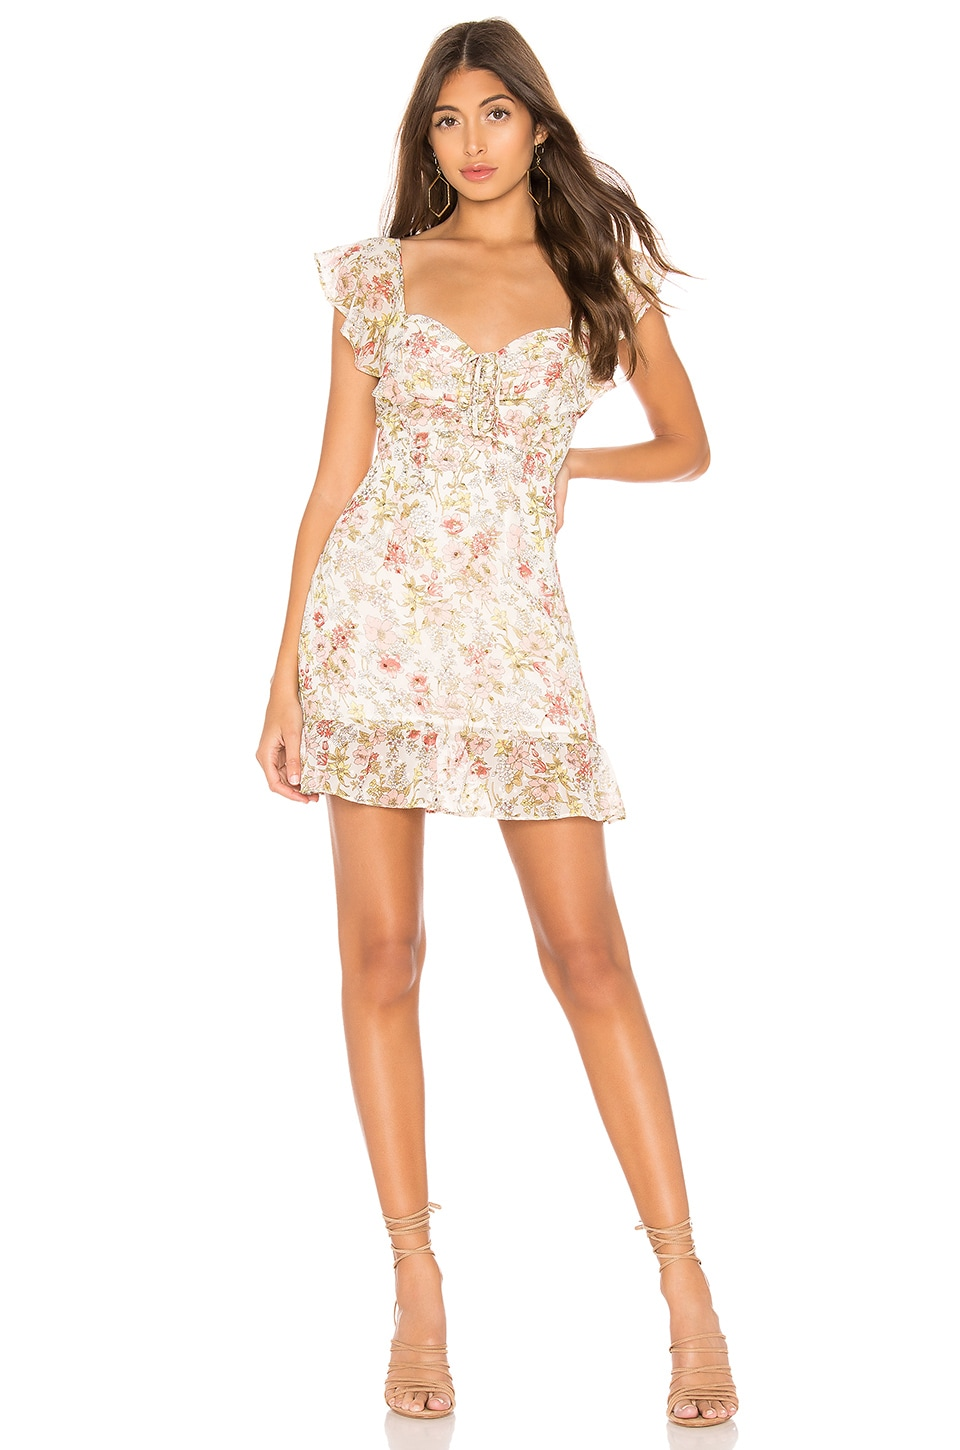 superdown Kristyn Mini Dress in White Floral